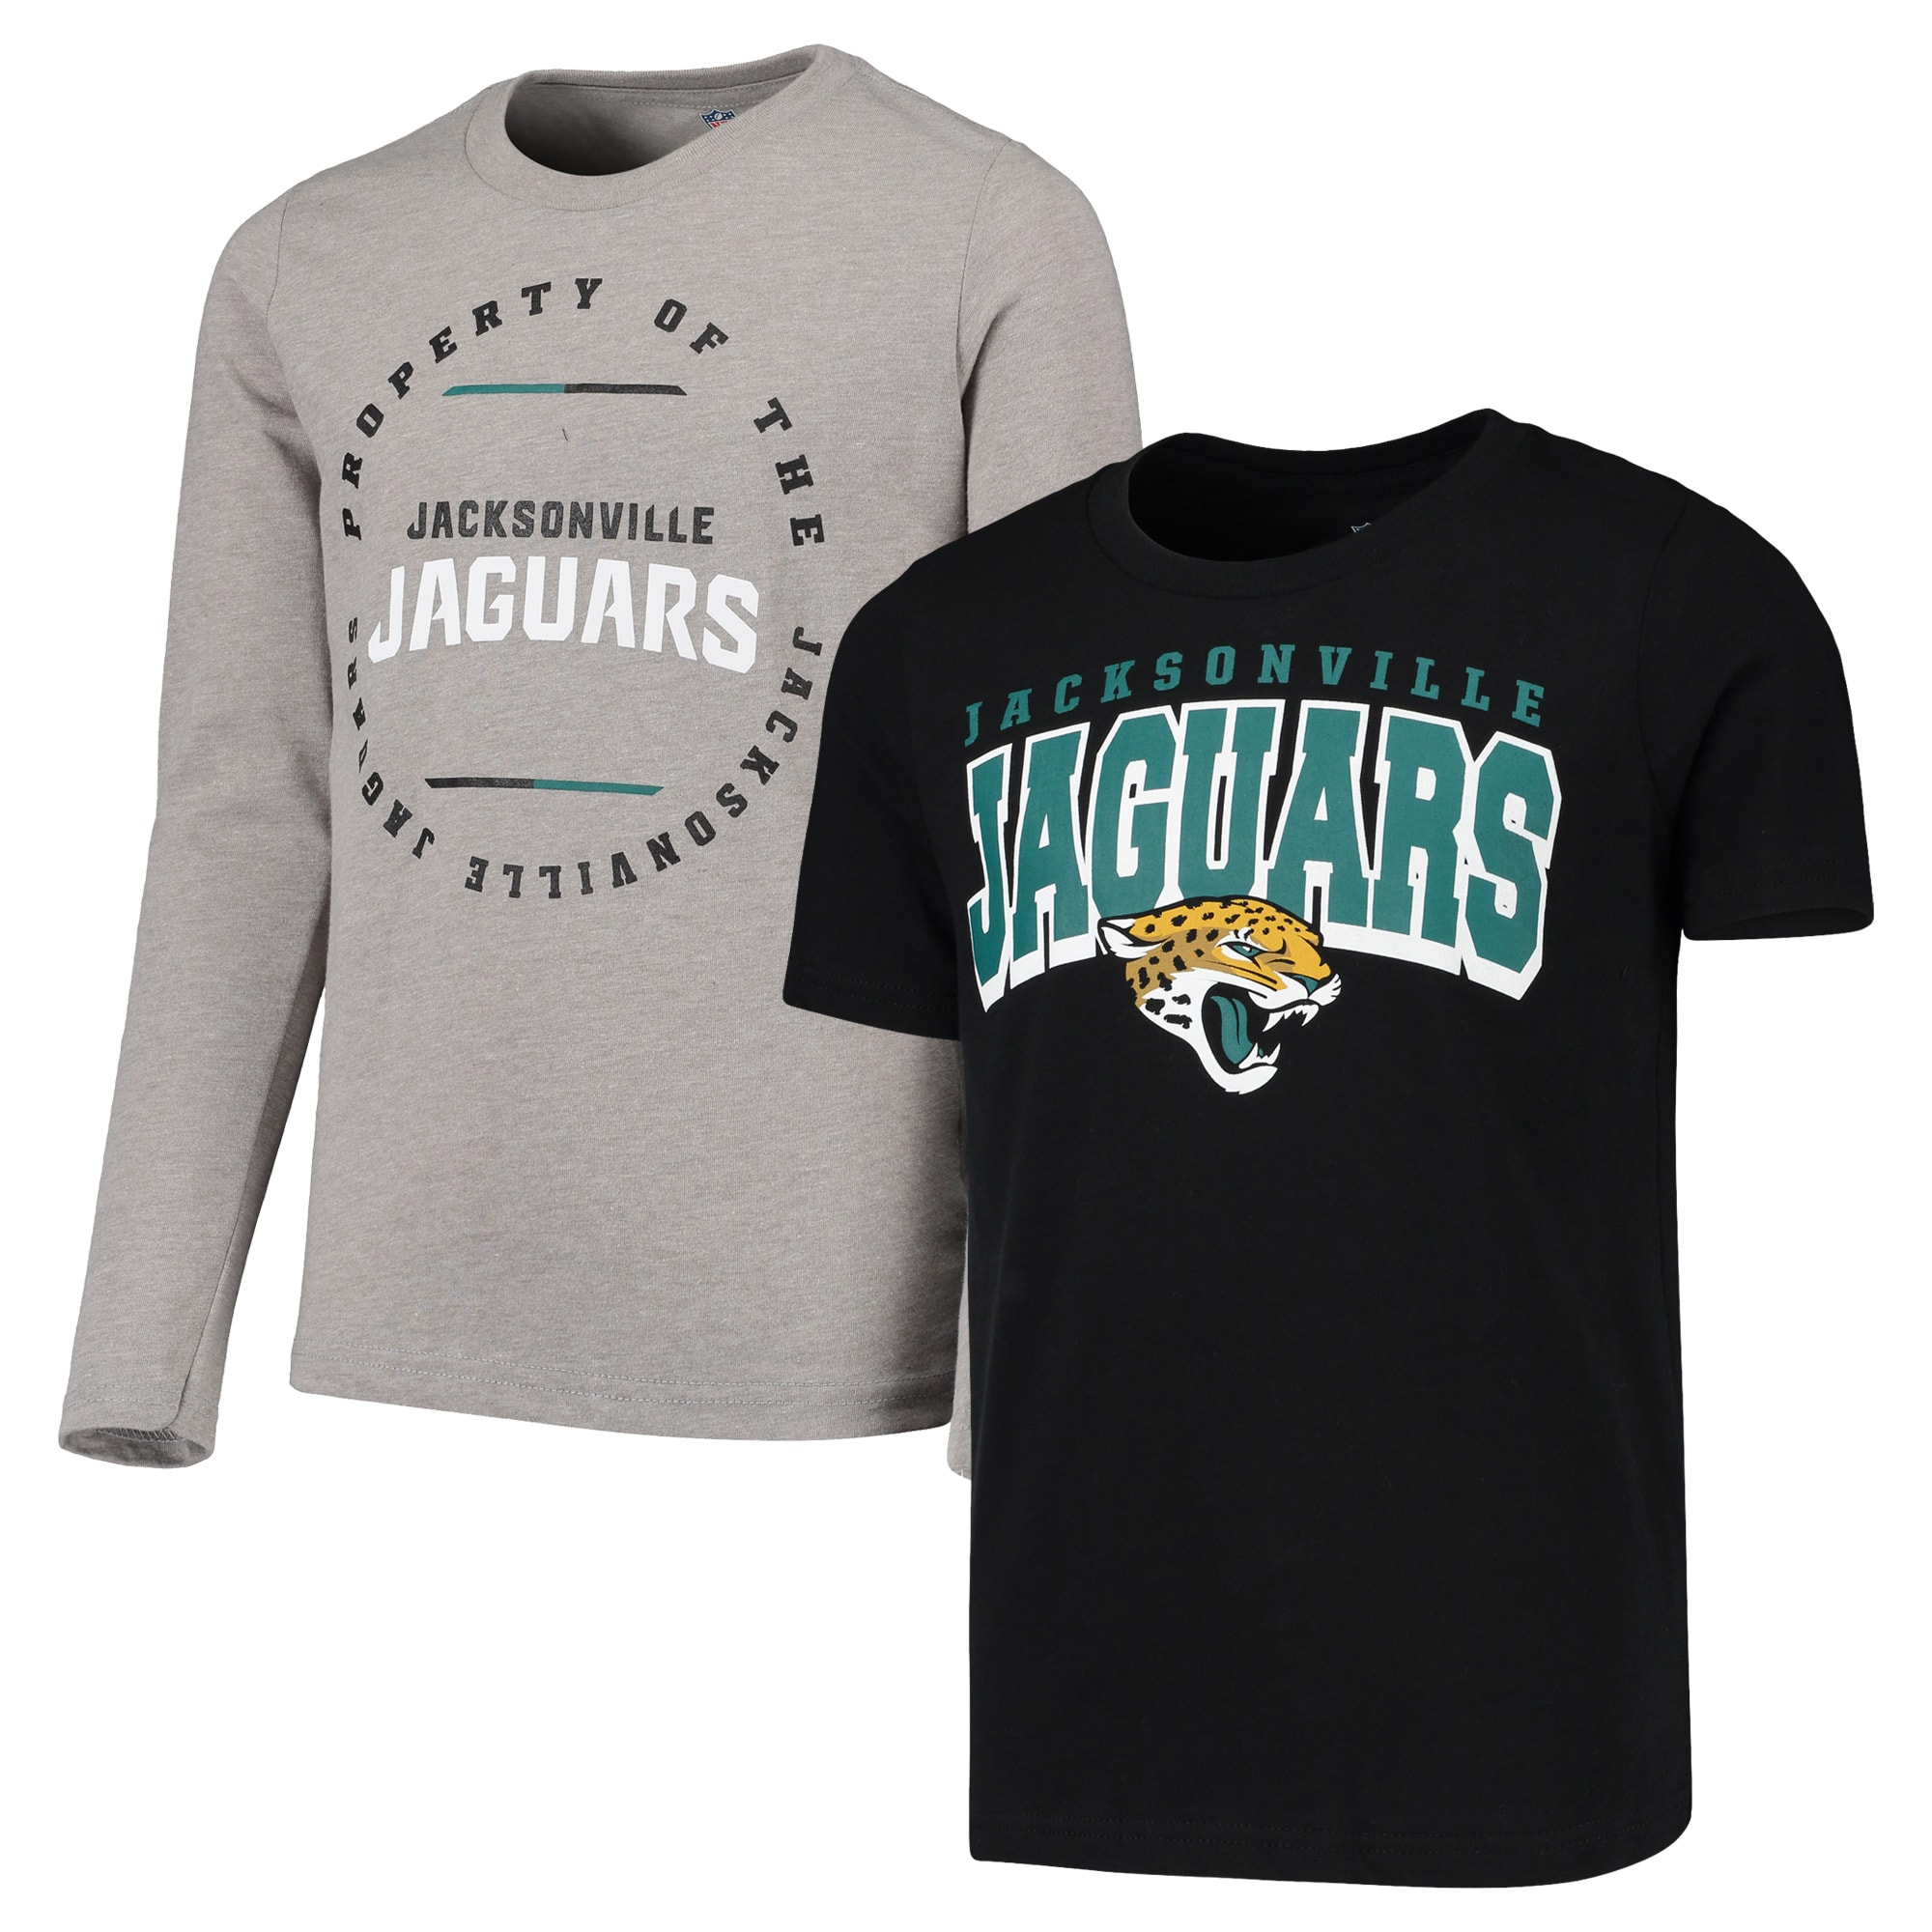 Jacksonville Jaguars Youth Club Short Sleeve & Long Sleeve T-Shirt Combo Pack - Black/Heathered Gray